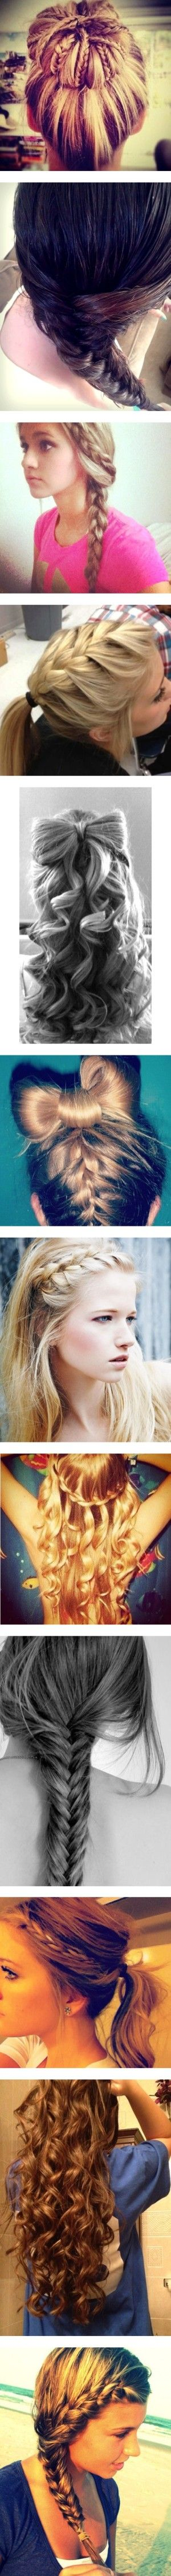 Best images about Glamorous Hair on Pinterest Updo Curls and